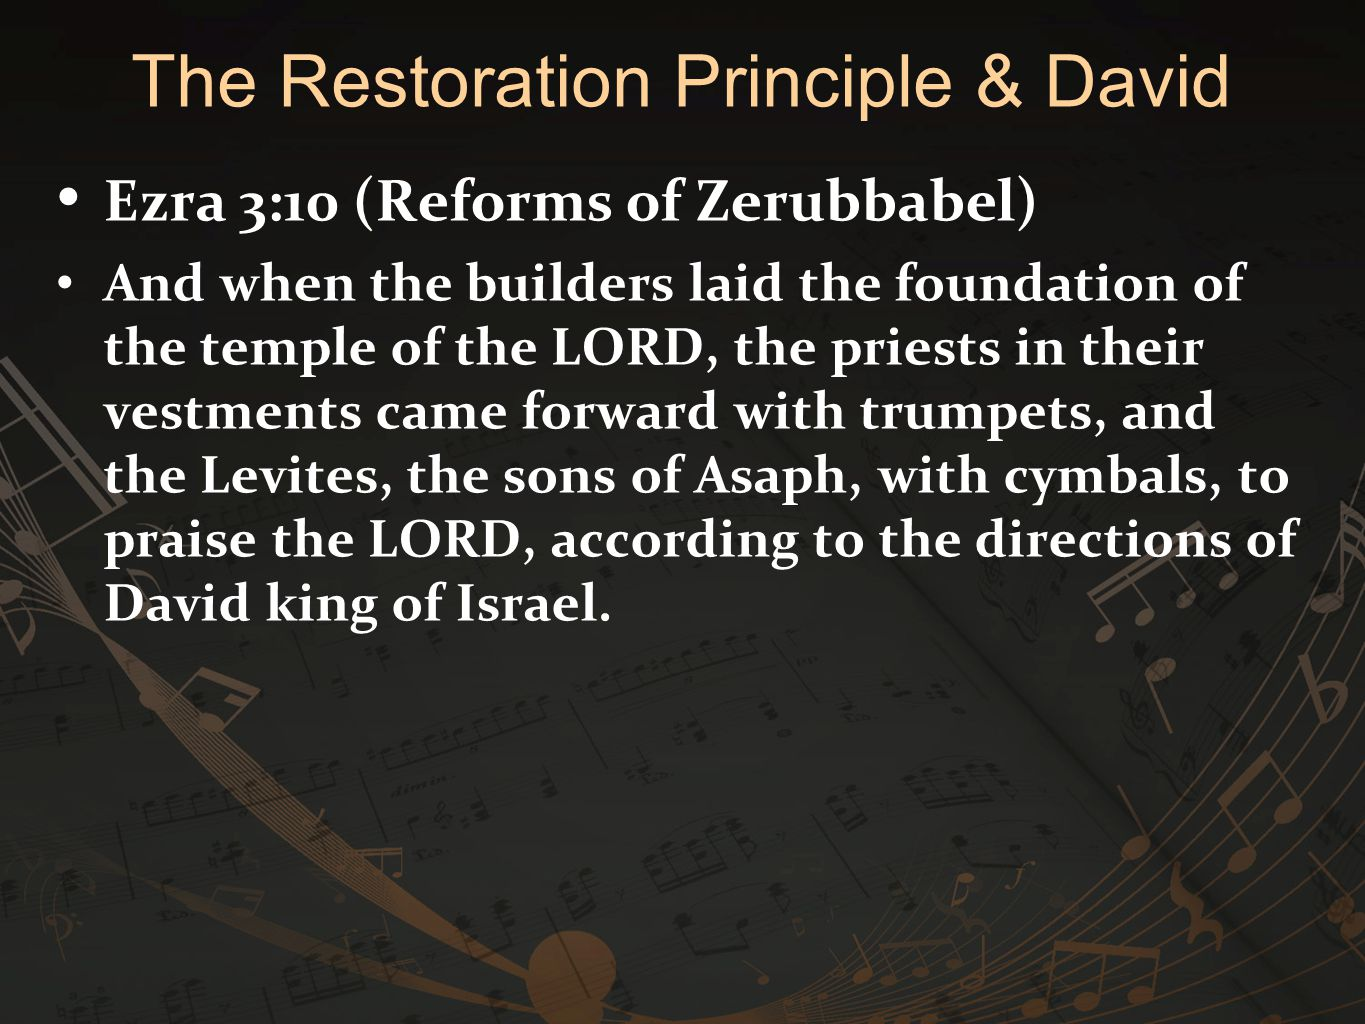 Ezra 3:10 (Reforms of Zerubbabel) And when the builders laid the foundation of the temple of the LORD, the priests in their vestments came forward with trumpets, and the Levites, the sons of Asaph, with cymbals, to praise the LORD, according to the directions of David king of Israel.